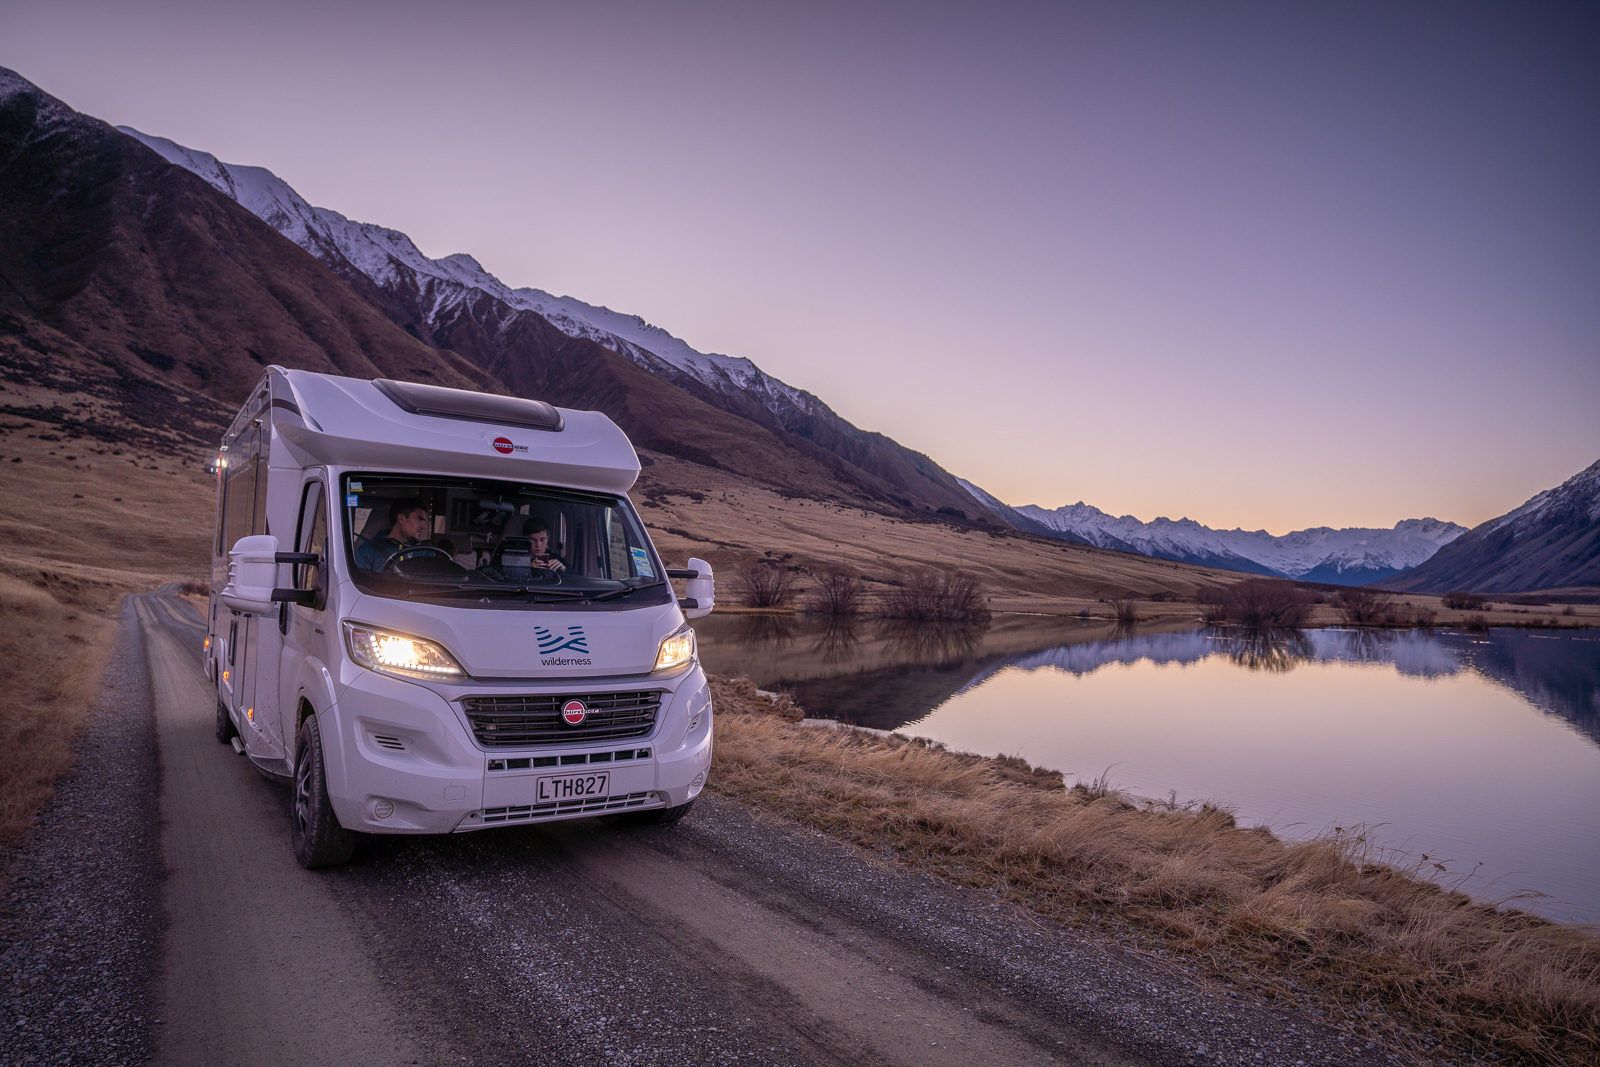 Wilderness-motorhome-Ahuriri-Valley